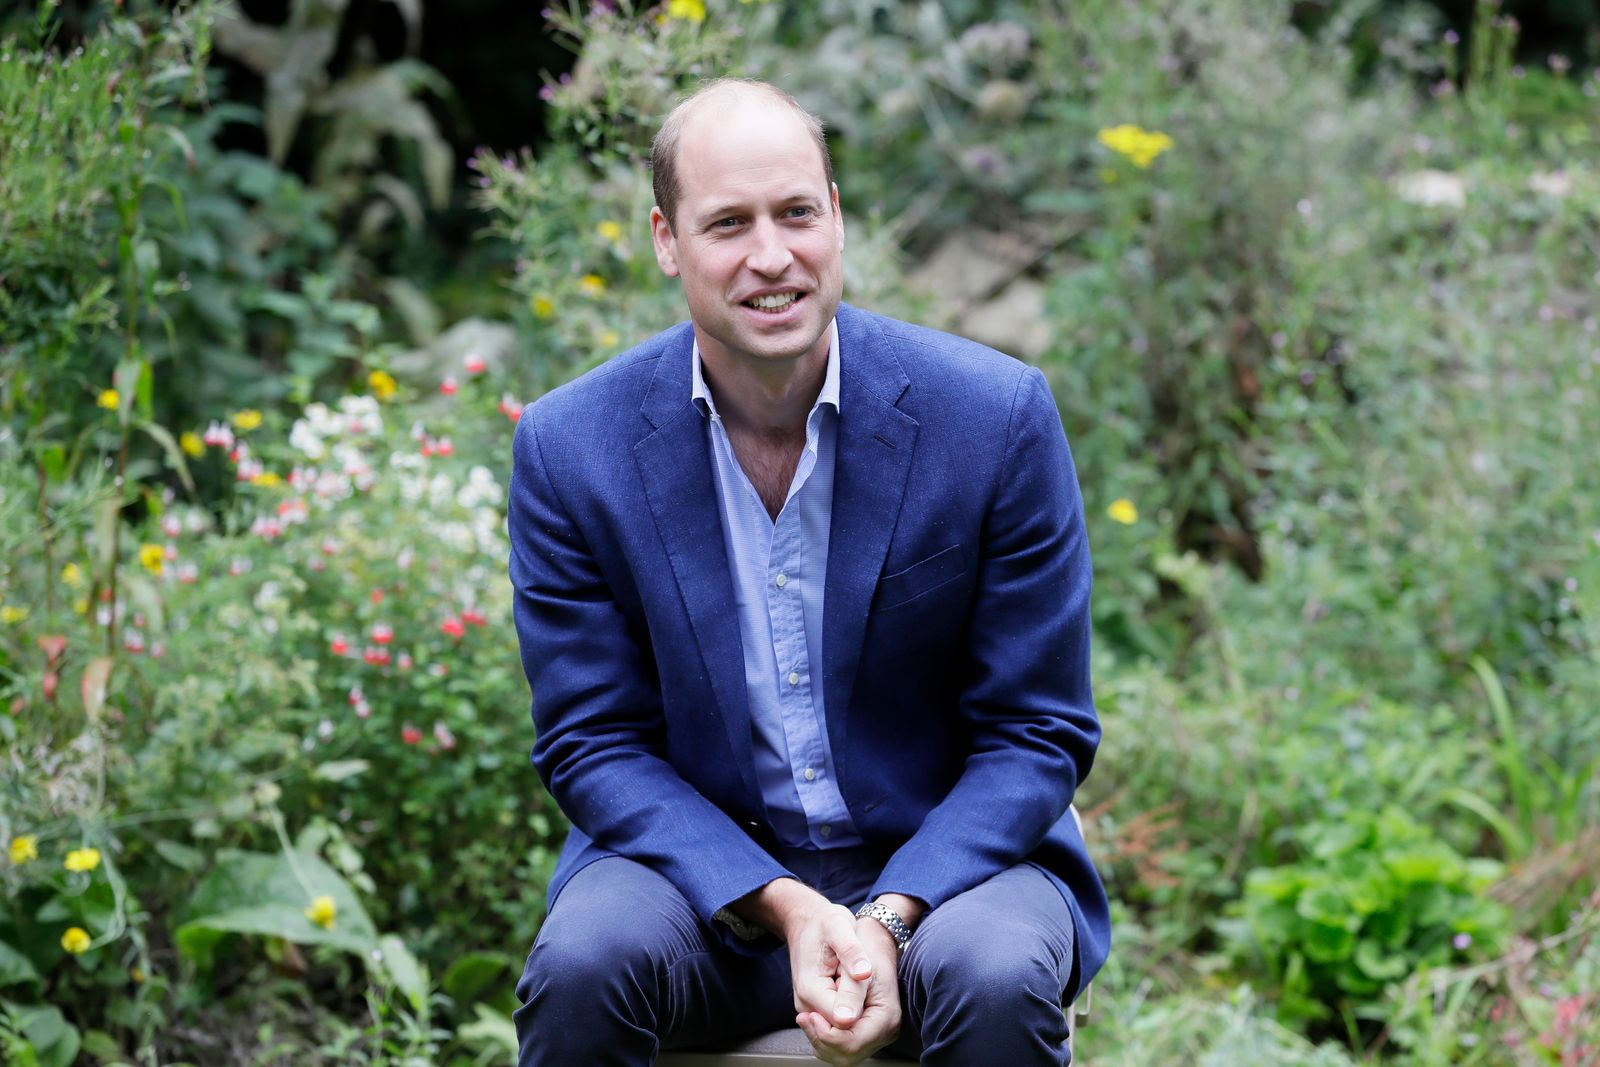 Prince William, Duke of Cambridge speaks during a visit to the Garden House part of the Light Project on July 16, 2020 | Photo: Getty Images